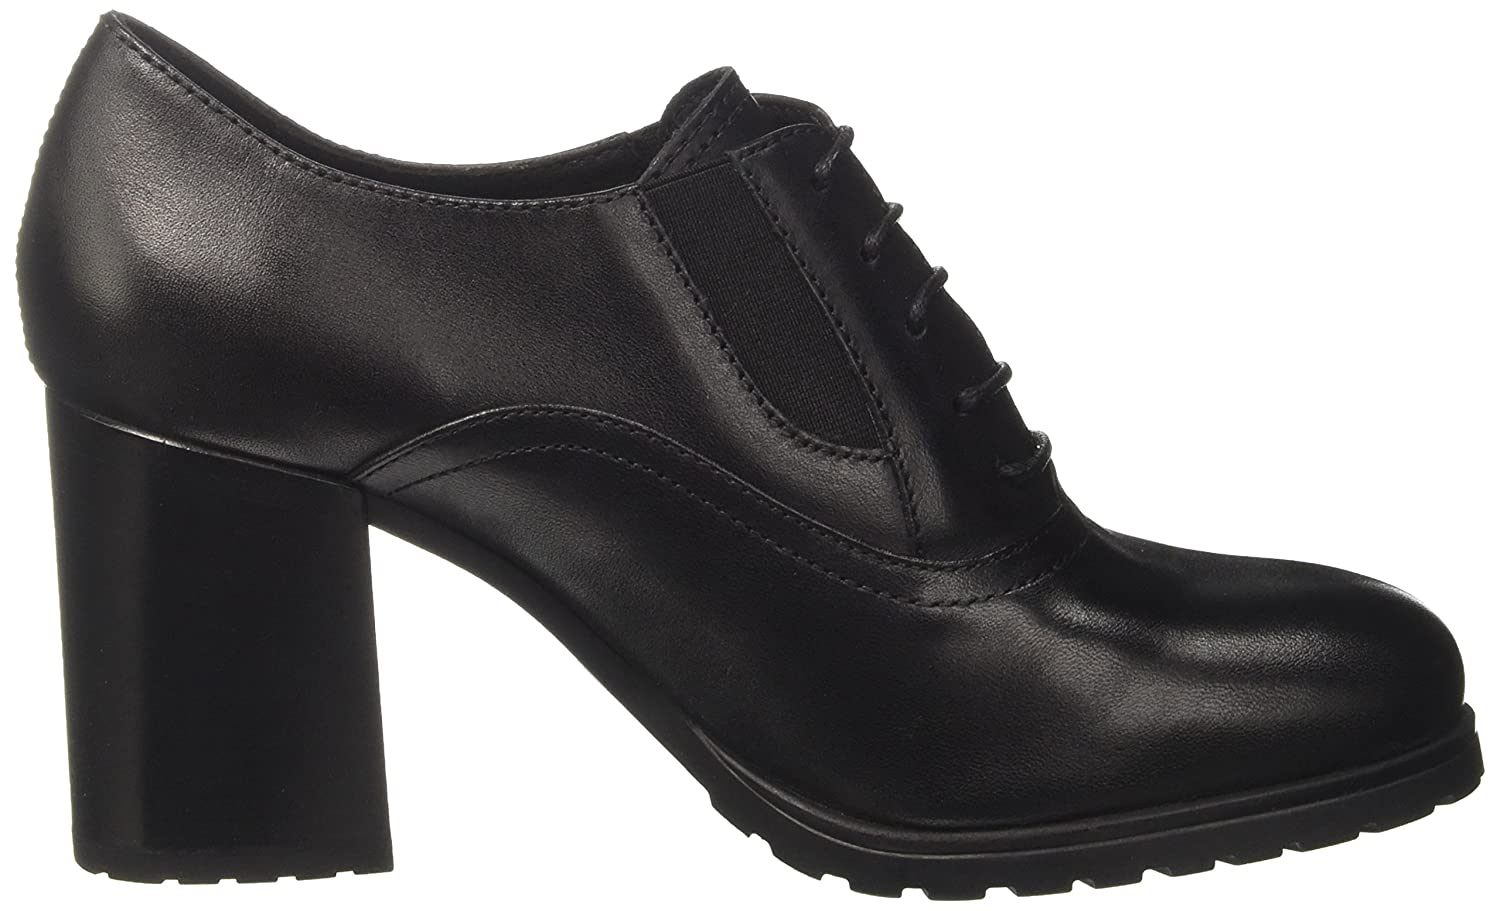 Geox Damen D E New Lise High E D Pumps Schwarz (schwarz) c4d45d